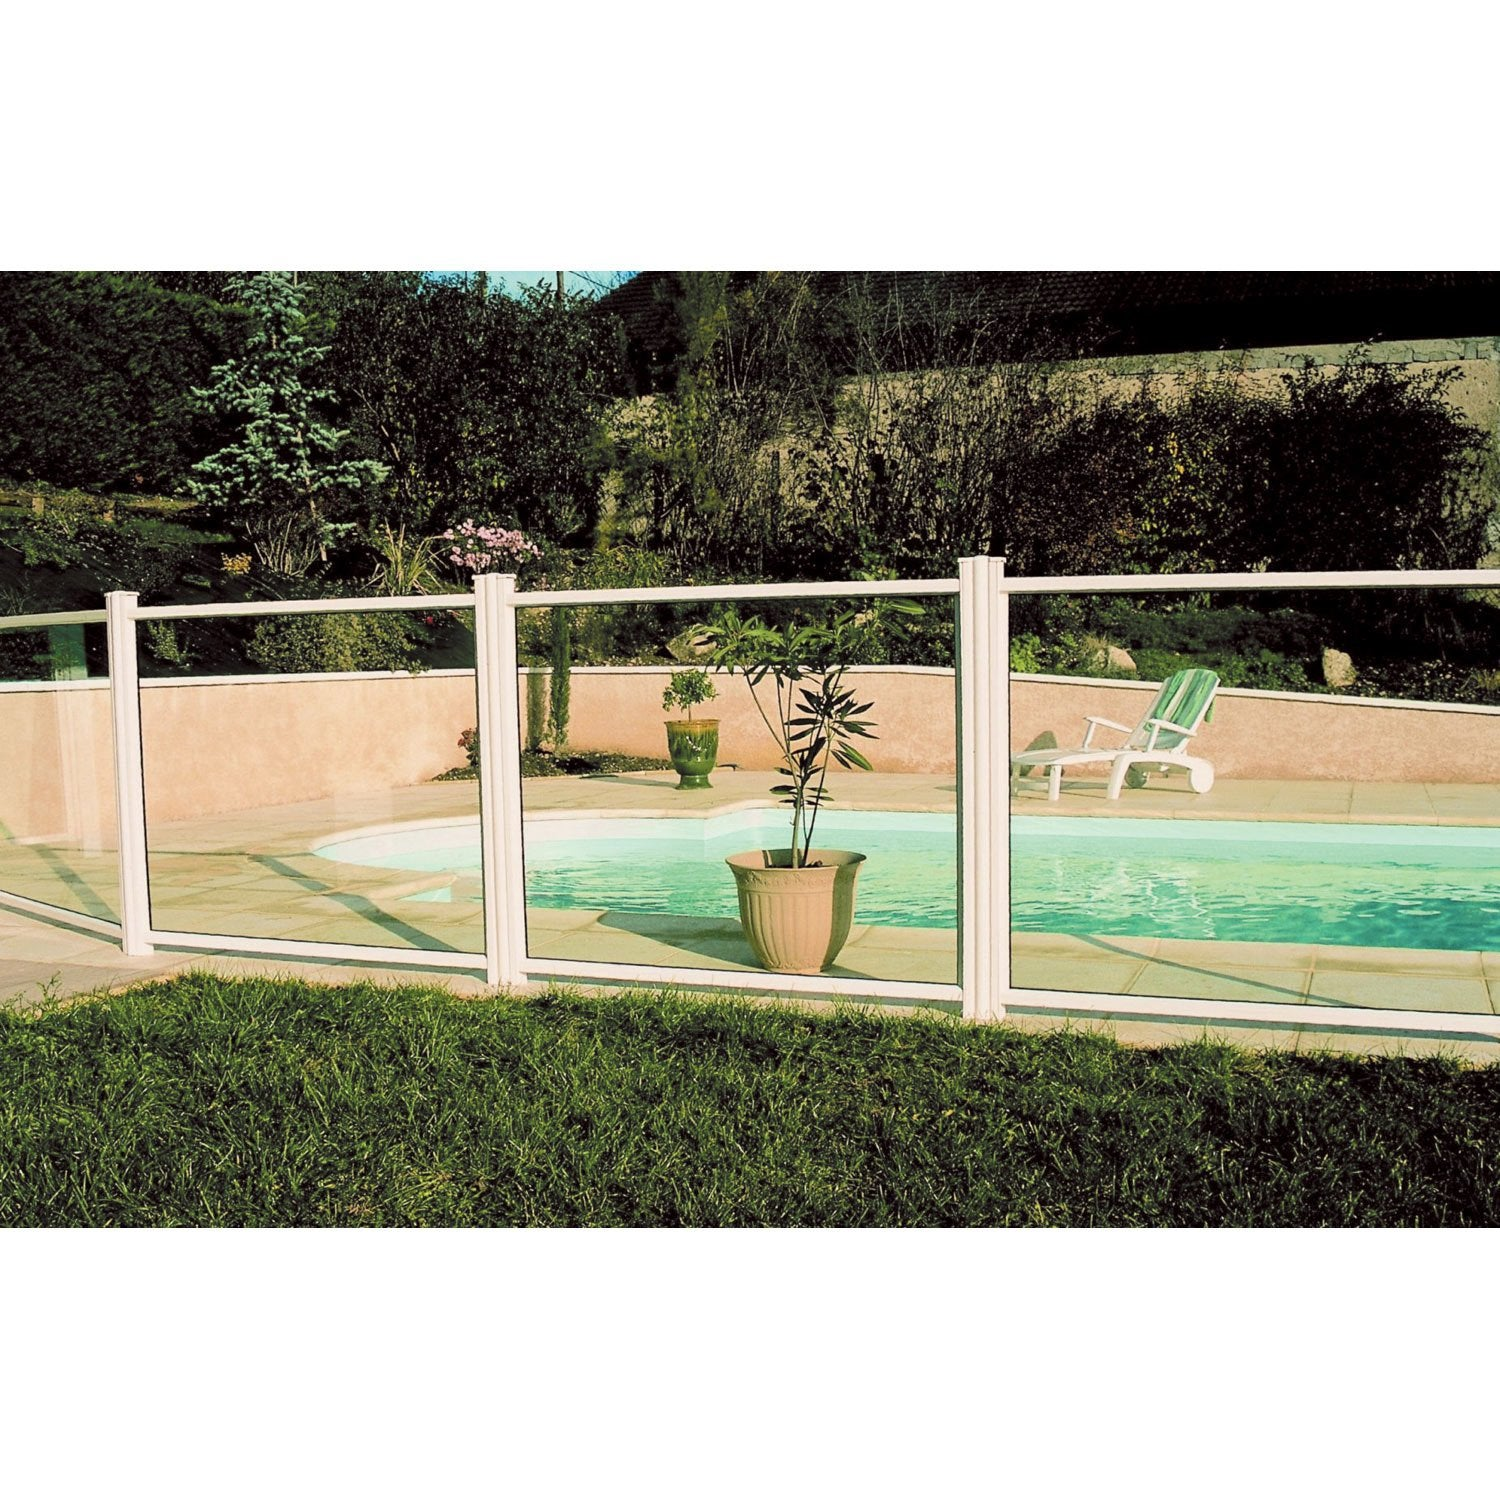 Barri re pour piscine aluminium esterel blanc 9010 for Barriere de piscine leroy merlin